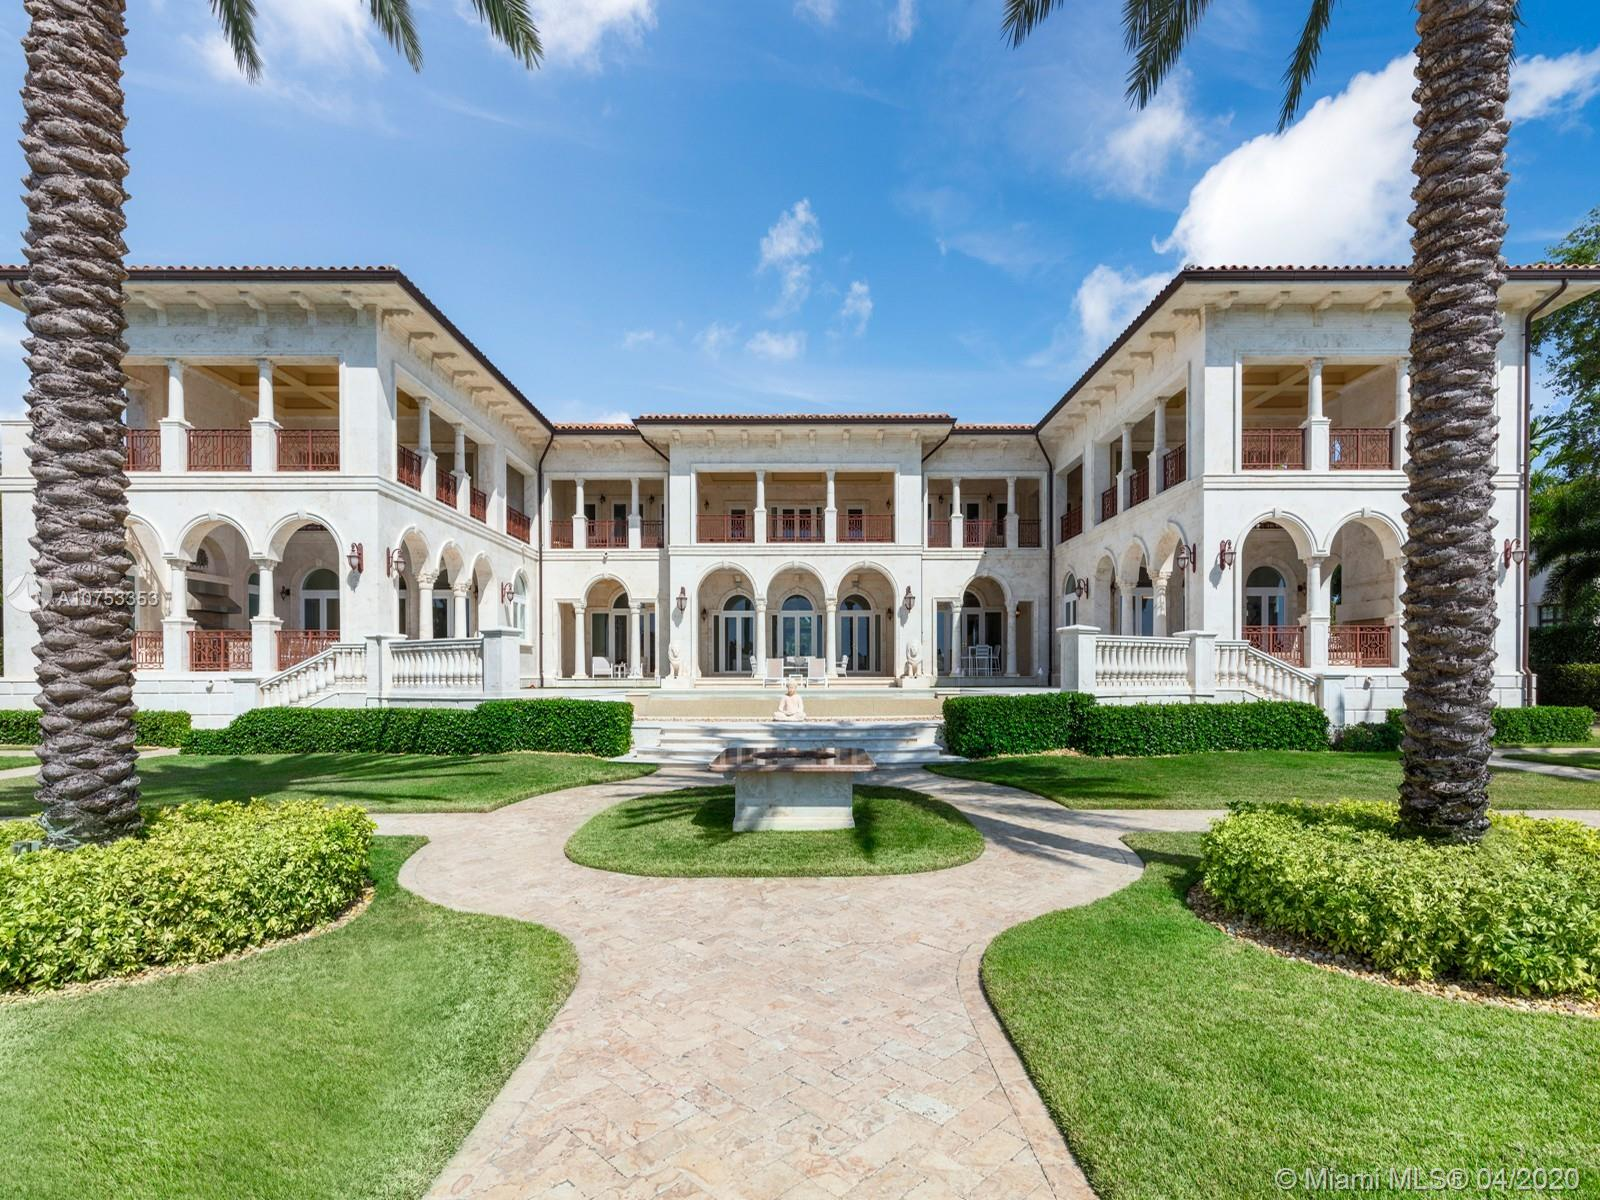 Two story Palatial/Neo-Classical Italian style villa designed by renowned architect Ramon Pacheco. This Dream home is 18,073 total sq feet, w/14,443 adjusted living area, facing south on wide Gables Estates lagoon with marble veneer walls & custom carved stone elements throughout. 200 feet of new seawall with 140 foot dock. 2,888 sq feet first floor covered terrace & 1,222 sq feet second floor covered terrace area. Huge Master suite with his/her bath with huge walk in closets, 5 additional En suite bedrooms & 2 bedroom staff quarter. Exquisite Venetian Plaster with carved plaster moldings throughout, 2 story foyer with crystal chandeliers. Custom crafted kitchen with butlers pantry, 600 bottle custom wood wine cellar. Library/Office with fireplace, private side entry. Huge Gym w/full bath.